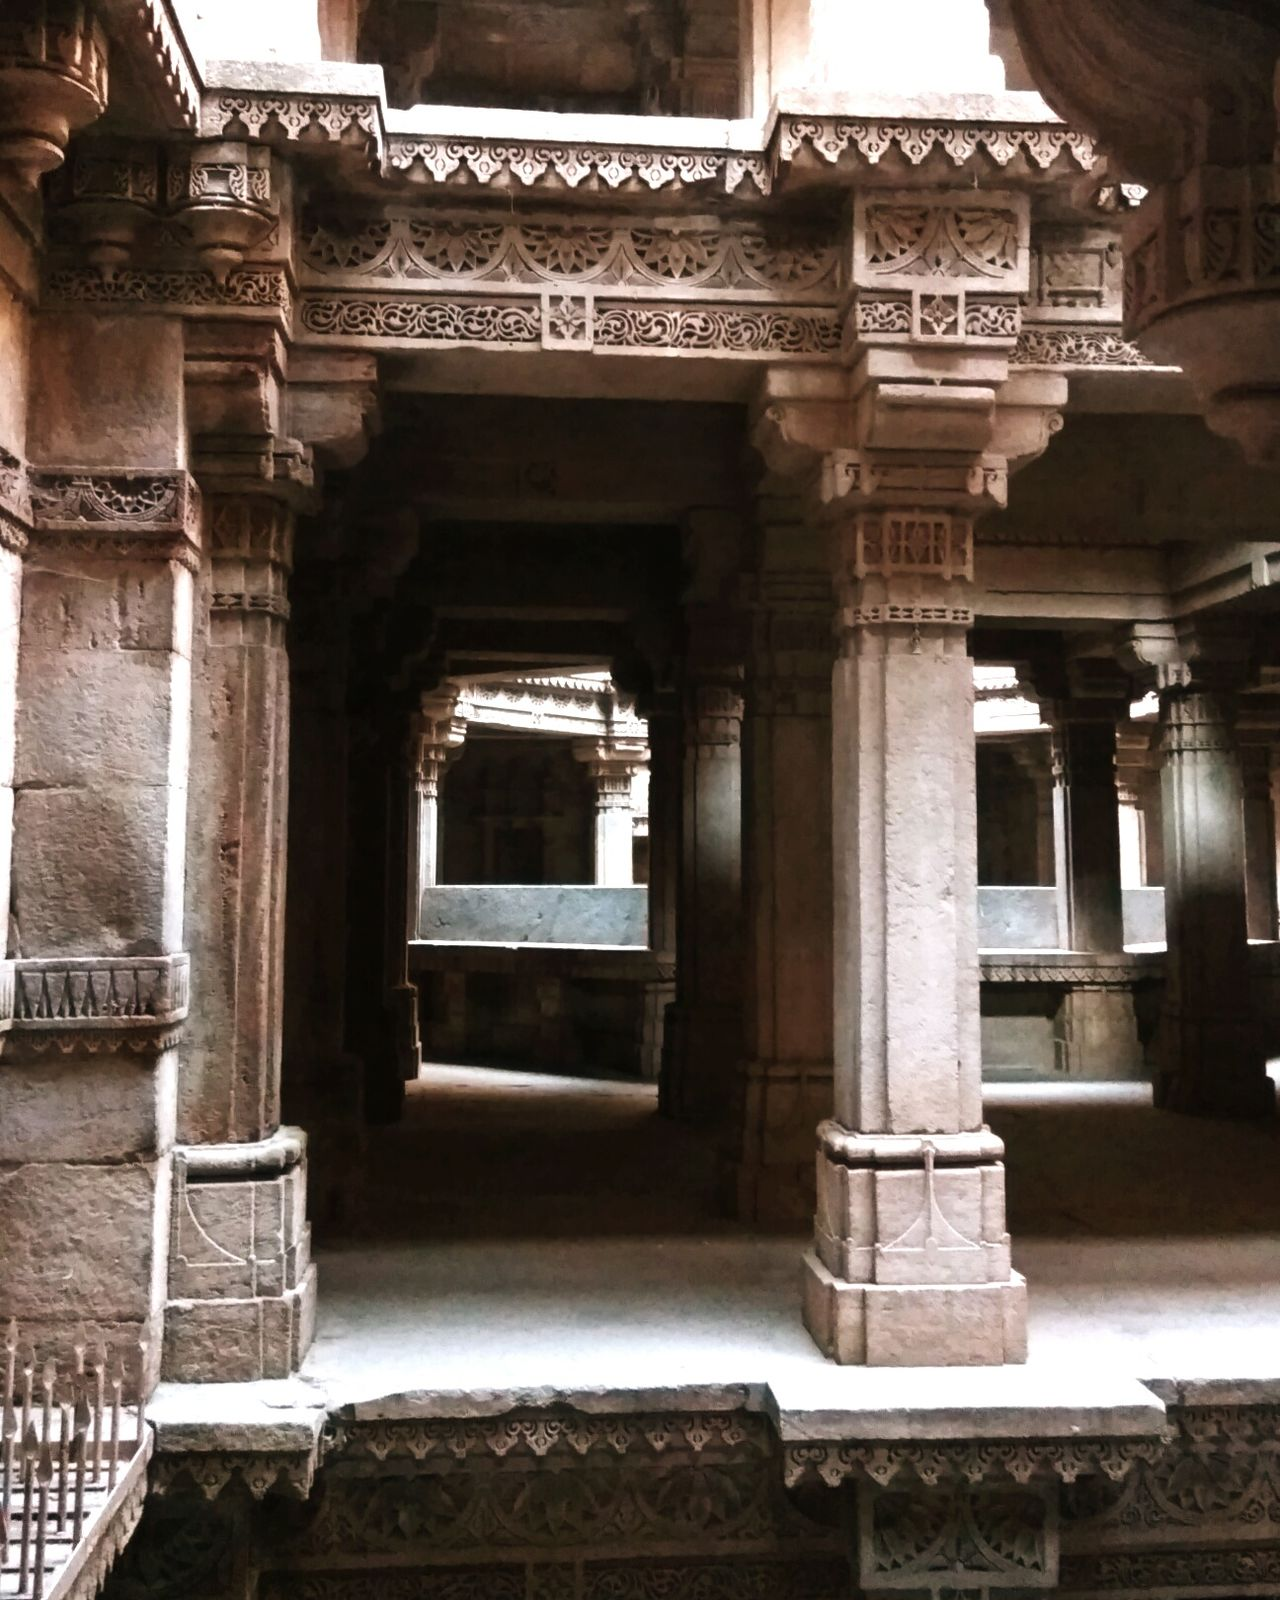 Architecture Built Structure Architectural Column History No People Indoors  Day Step Well